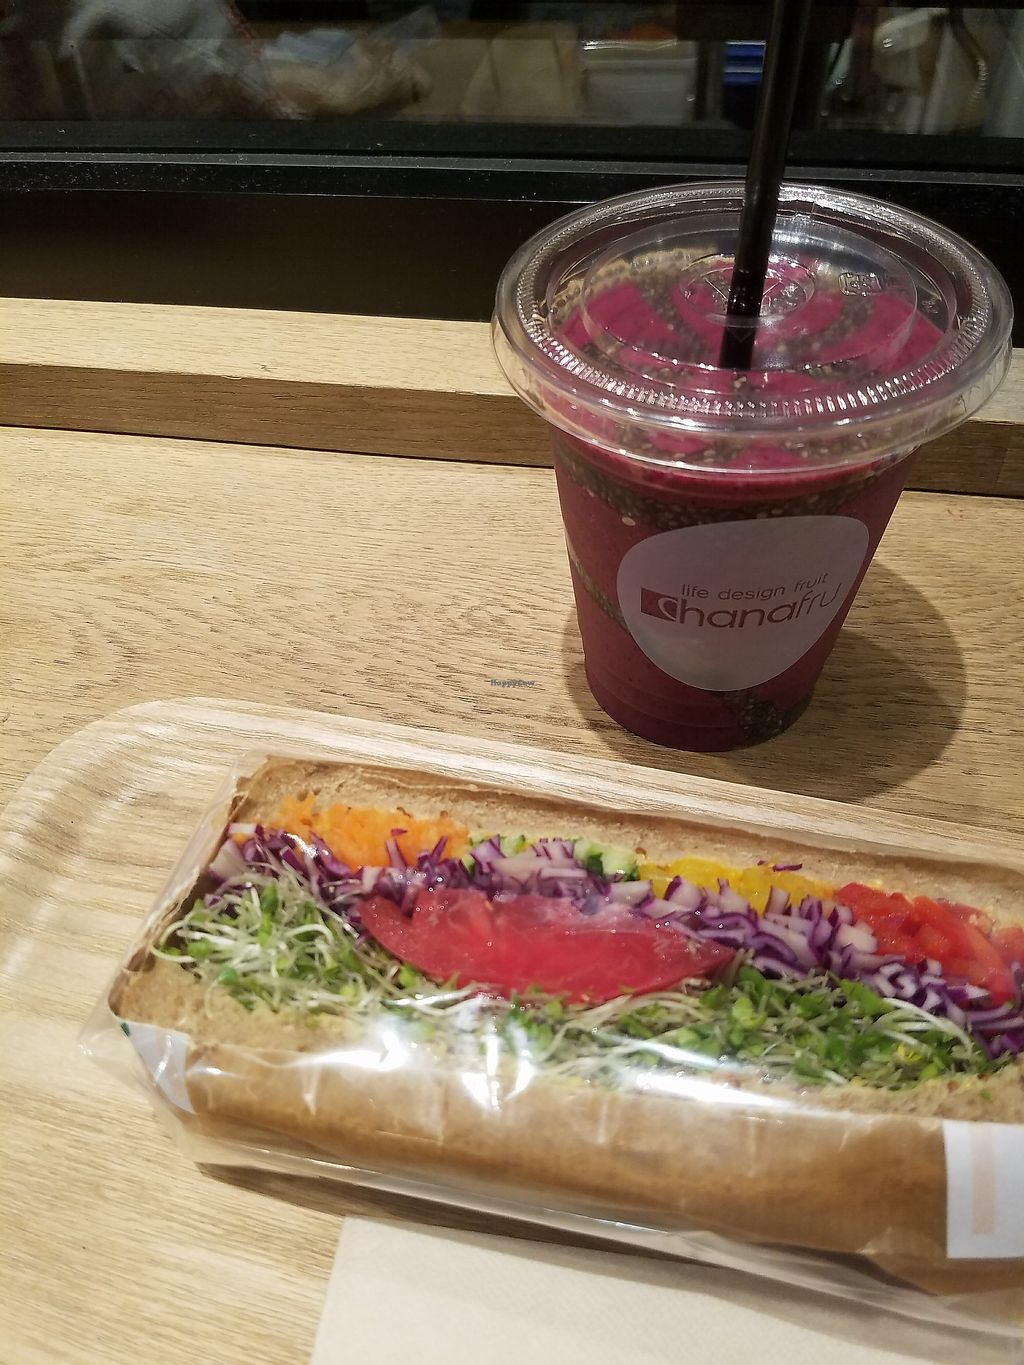 """Photo of Hanafru Parachutes  by <a href=""""/members/profile/ReiAmber"""">ReiAmber</a> <br/>chia seed smoothie and sandwich <br/> May 8, 2018  - <a href='/contact/abuse/image/106576/396954'>Report</a>"""